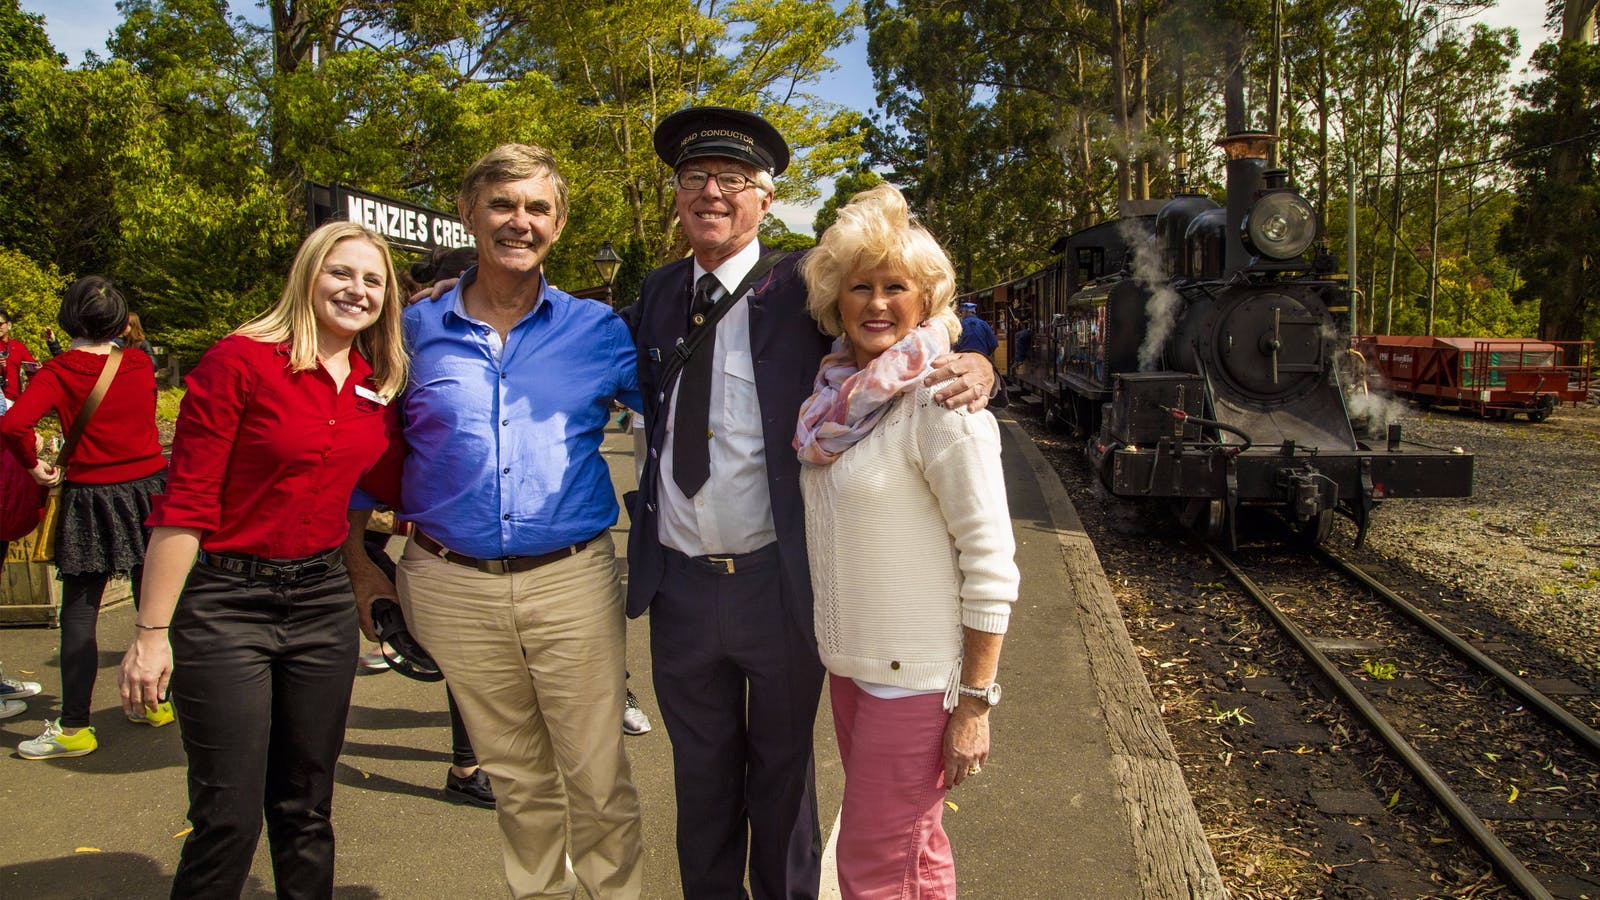 AAT Kings guide and guests with Puffing Billy Steam Train